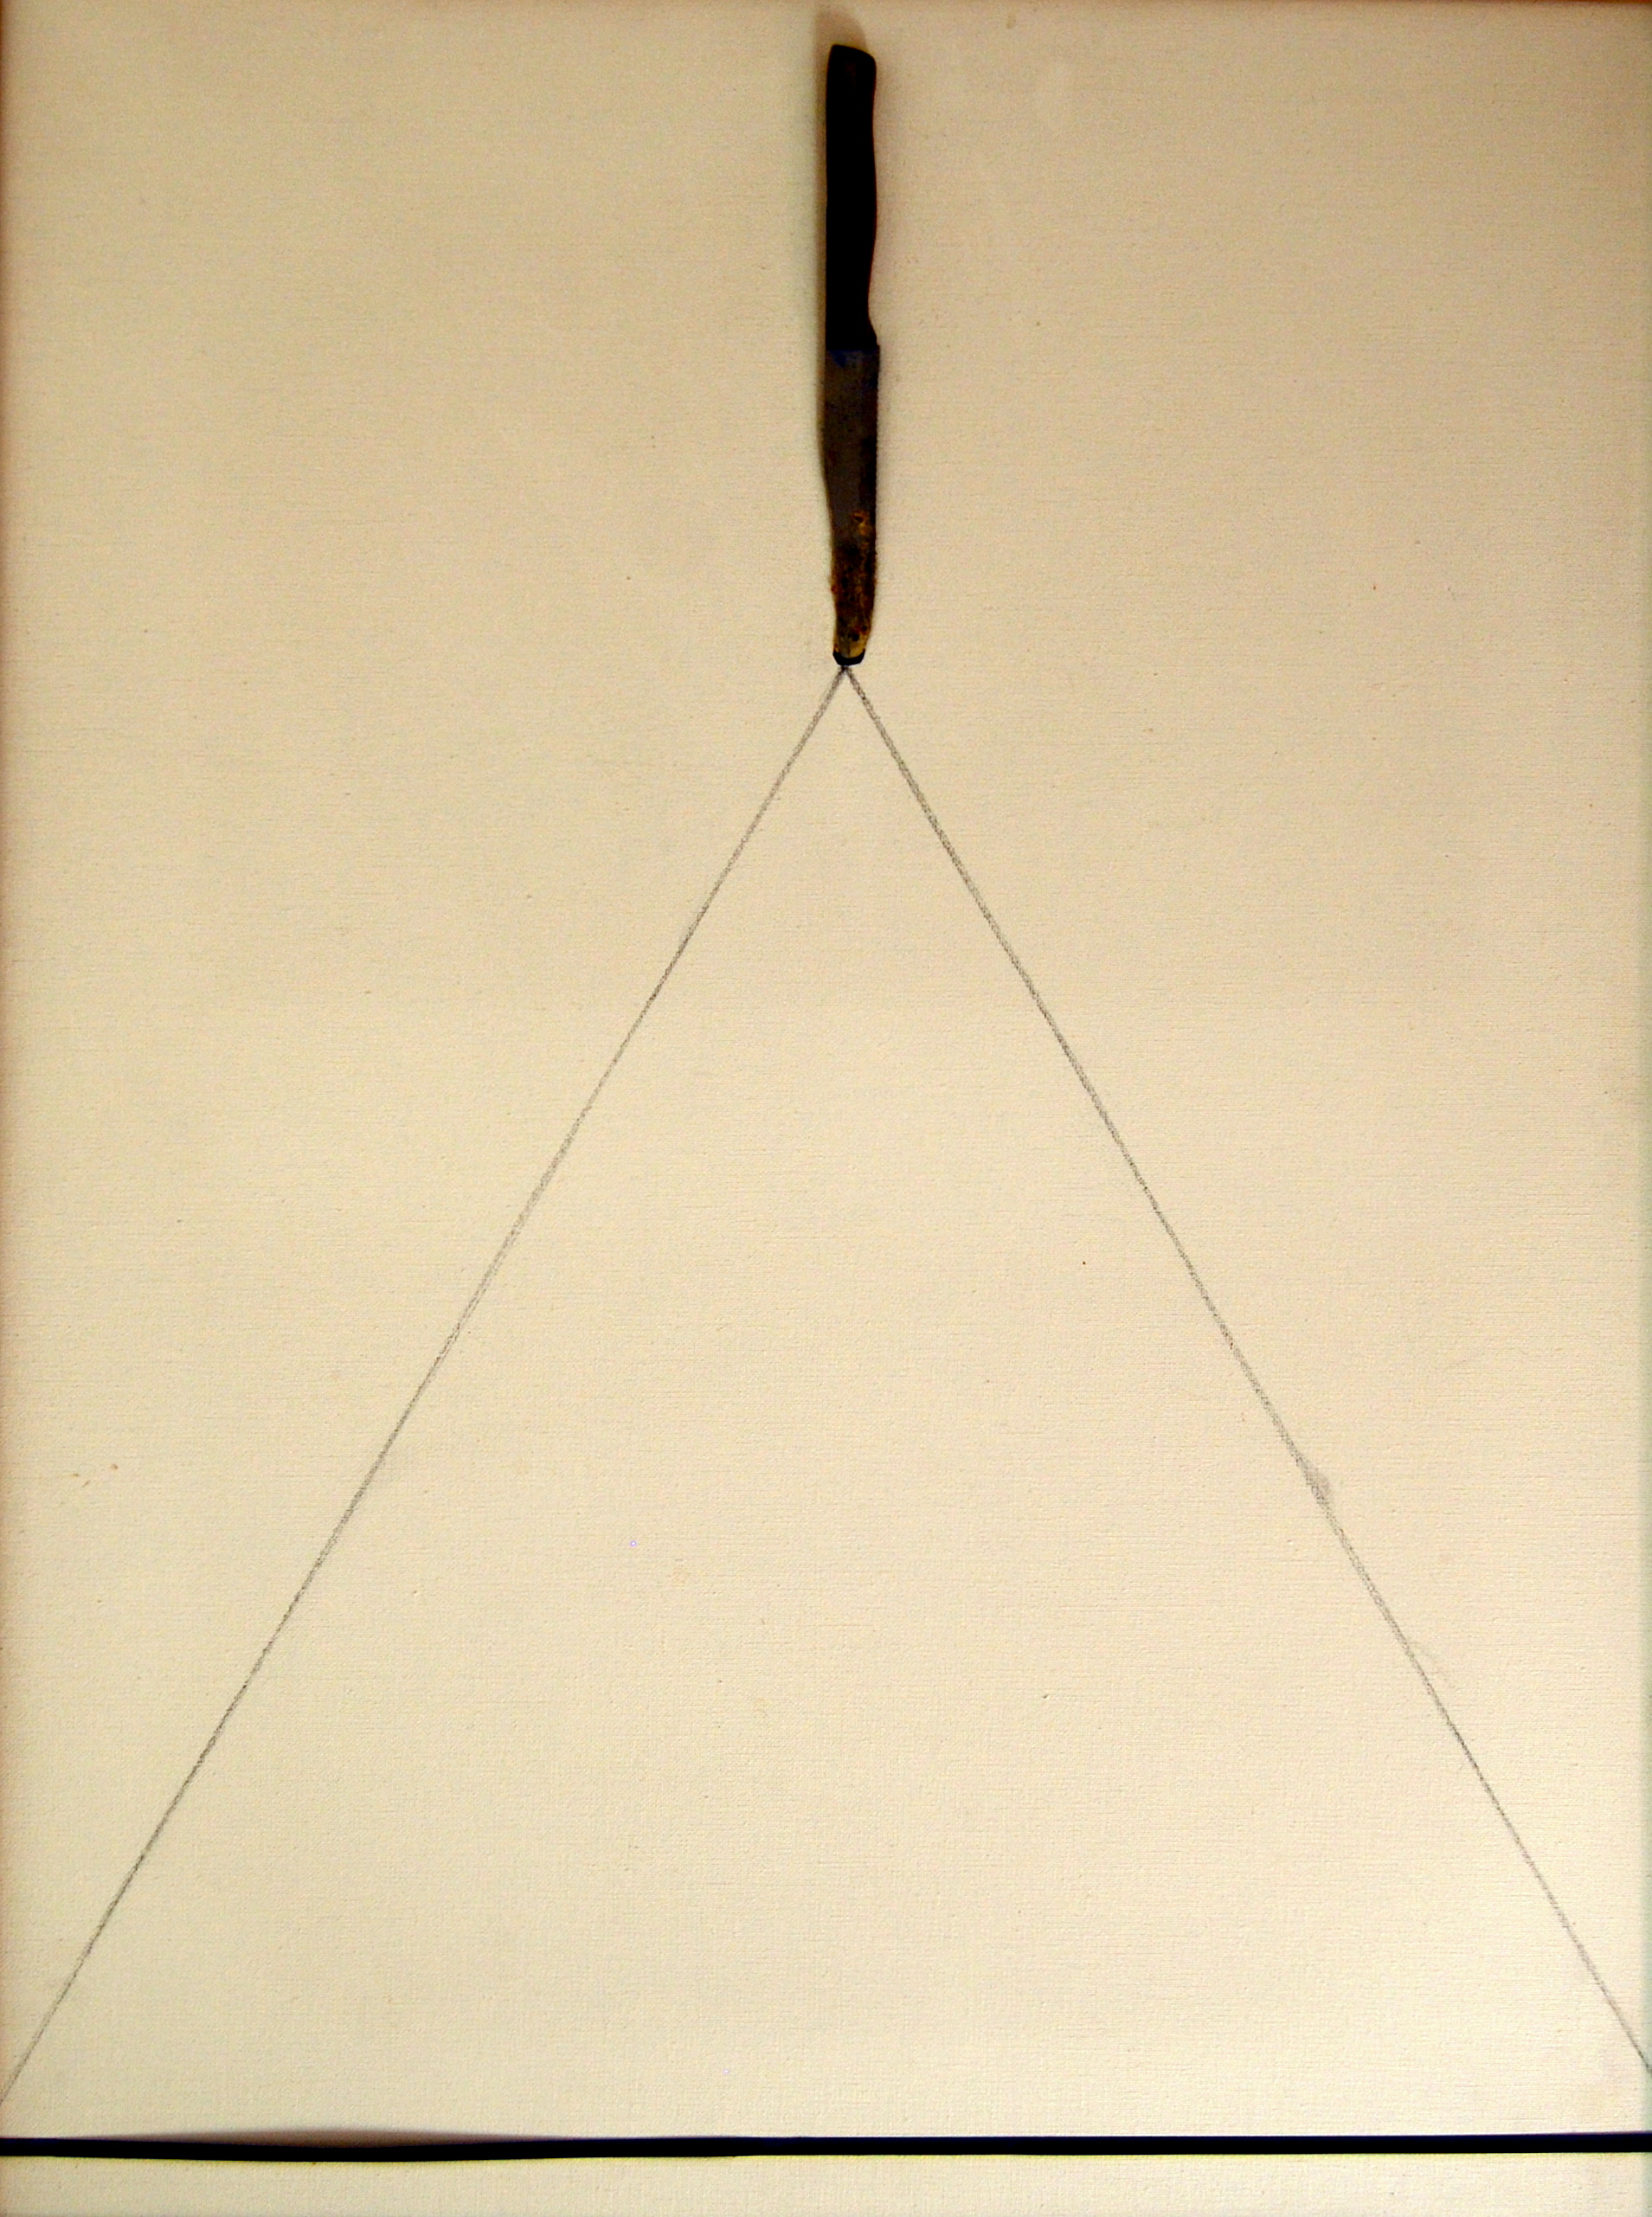 Il coltello, 1975, polimaterico su tela, cm 80 x 60   Il coltello, 1975, mixed media on canvas, cm 80 x 60